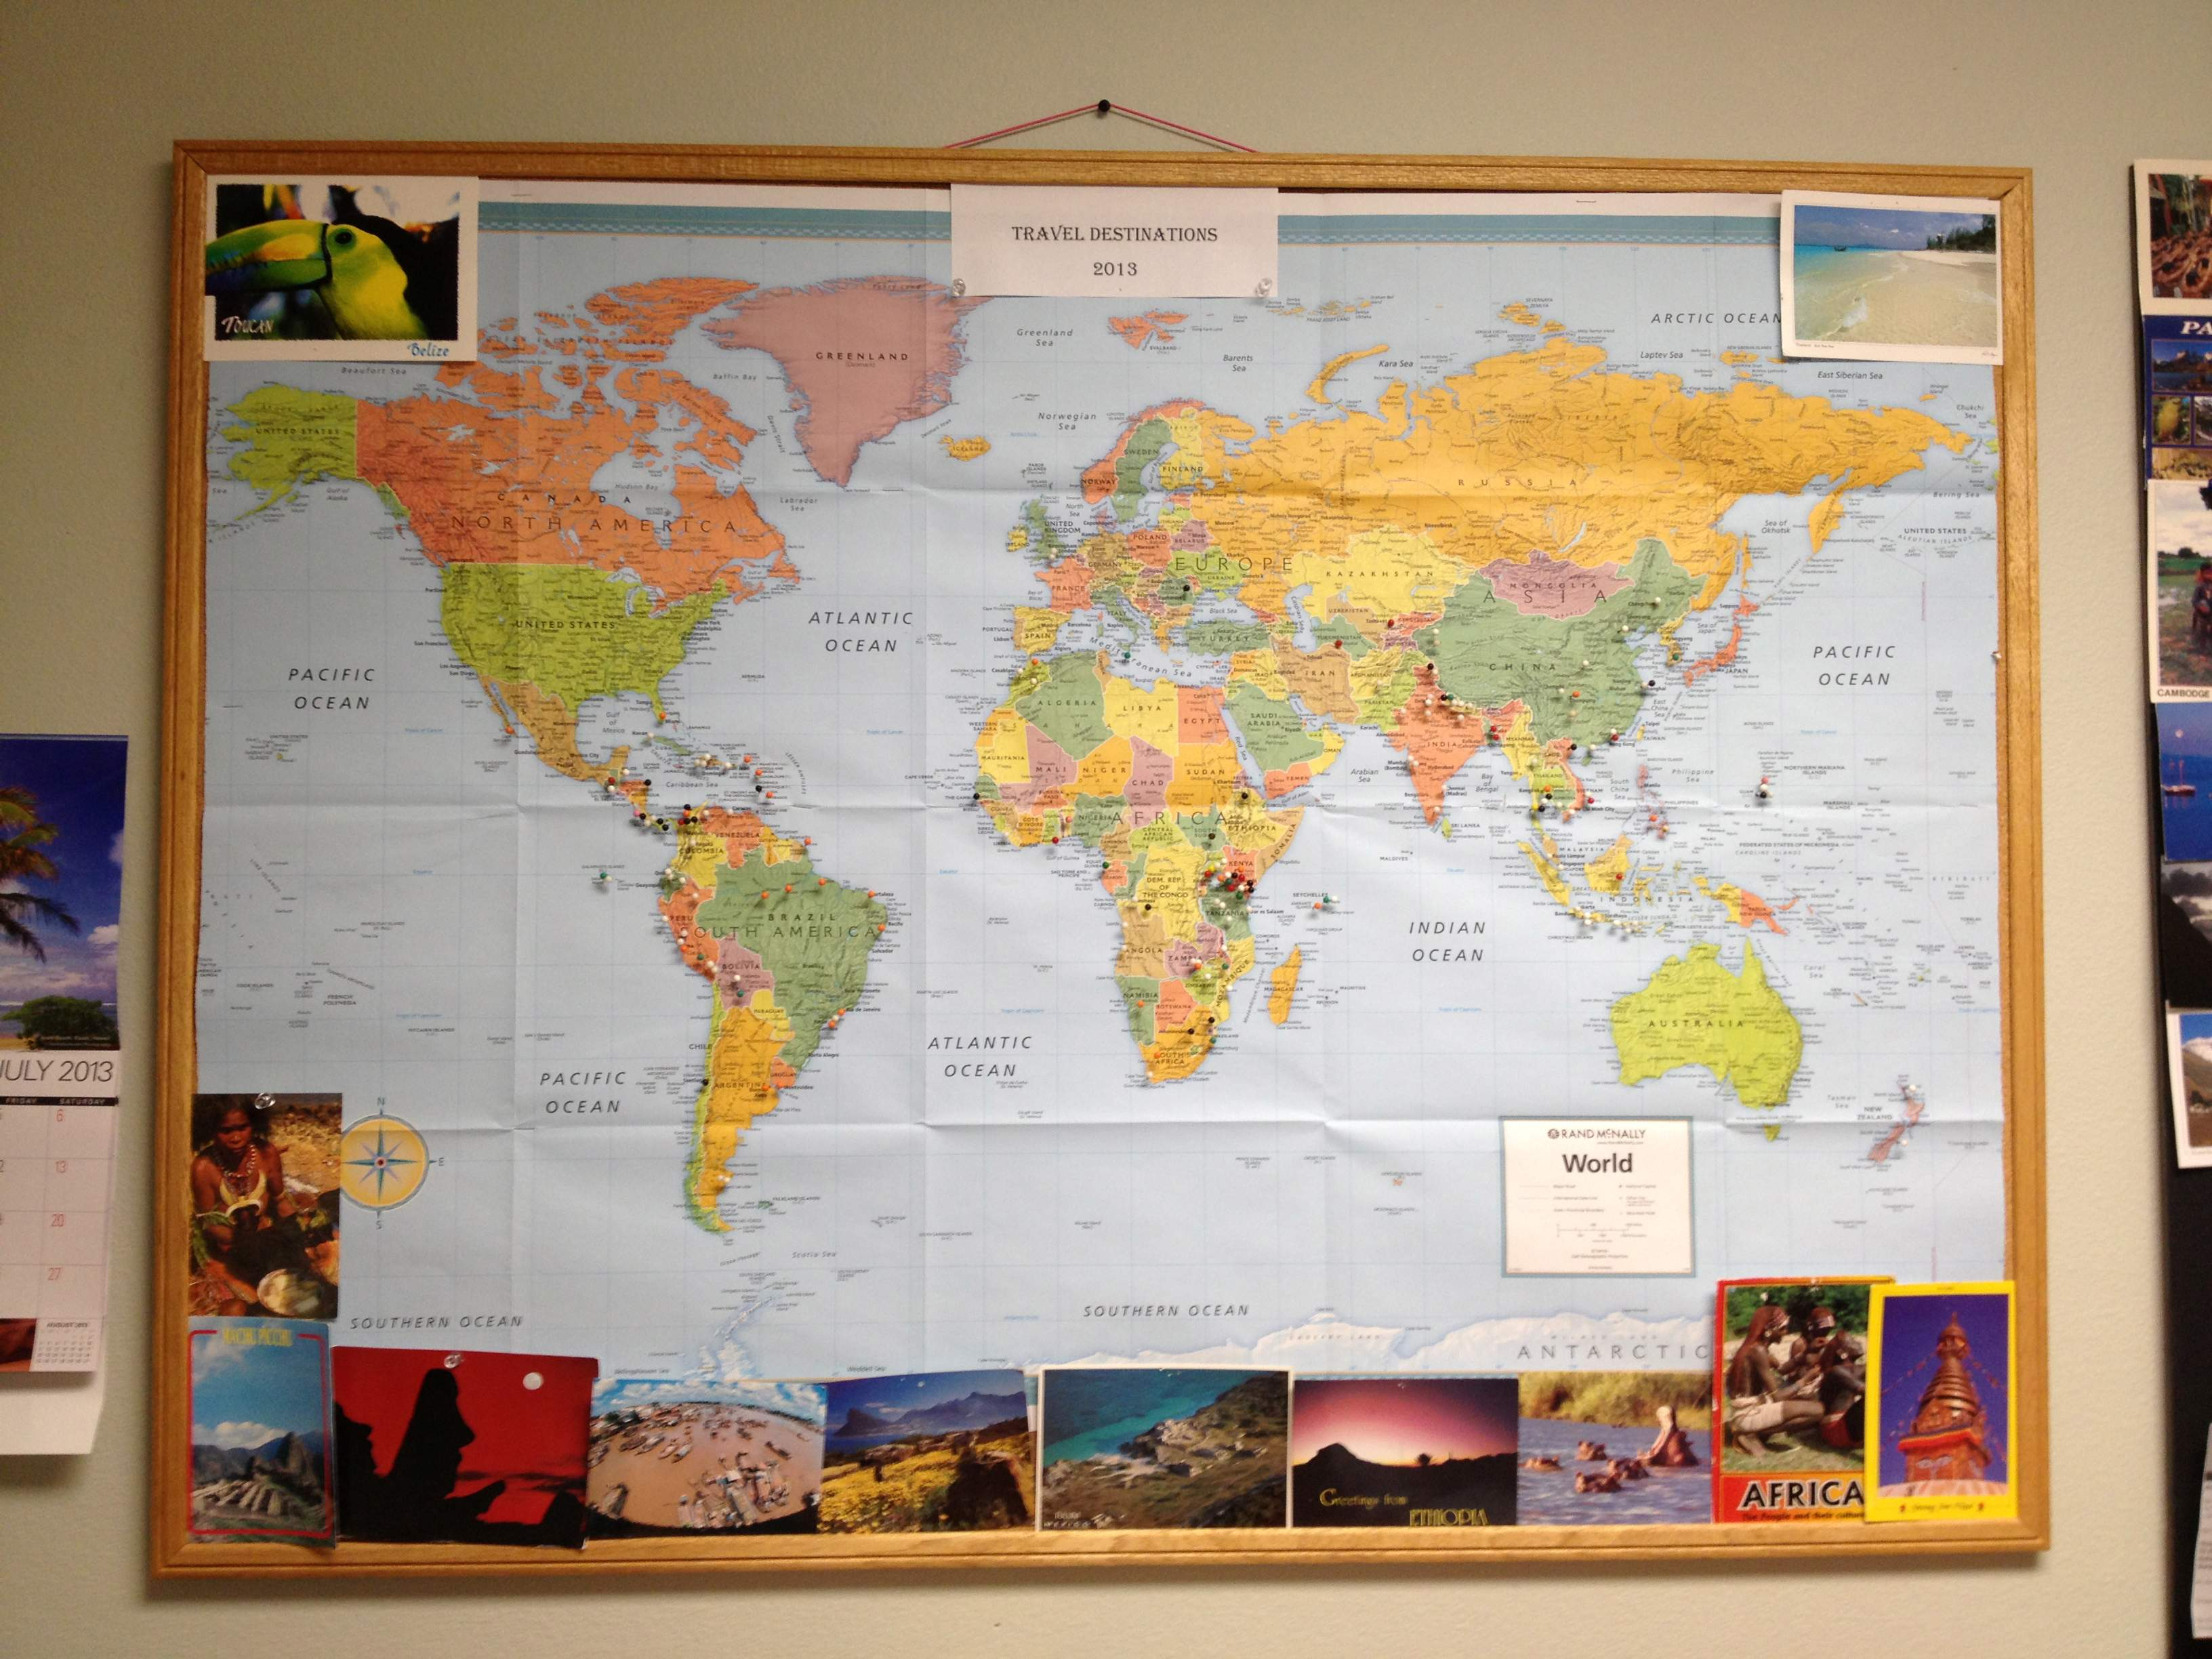 this is a larger view of the world map showing where durango residents have traveled and its a variety that certainly will pique interest